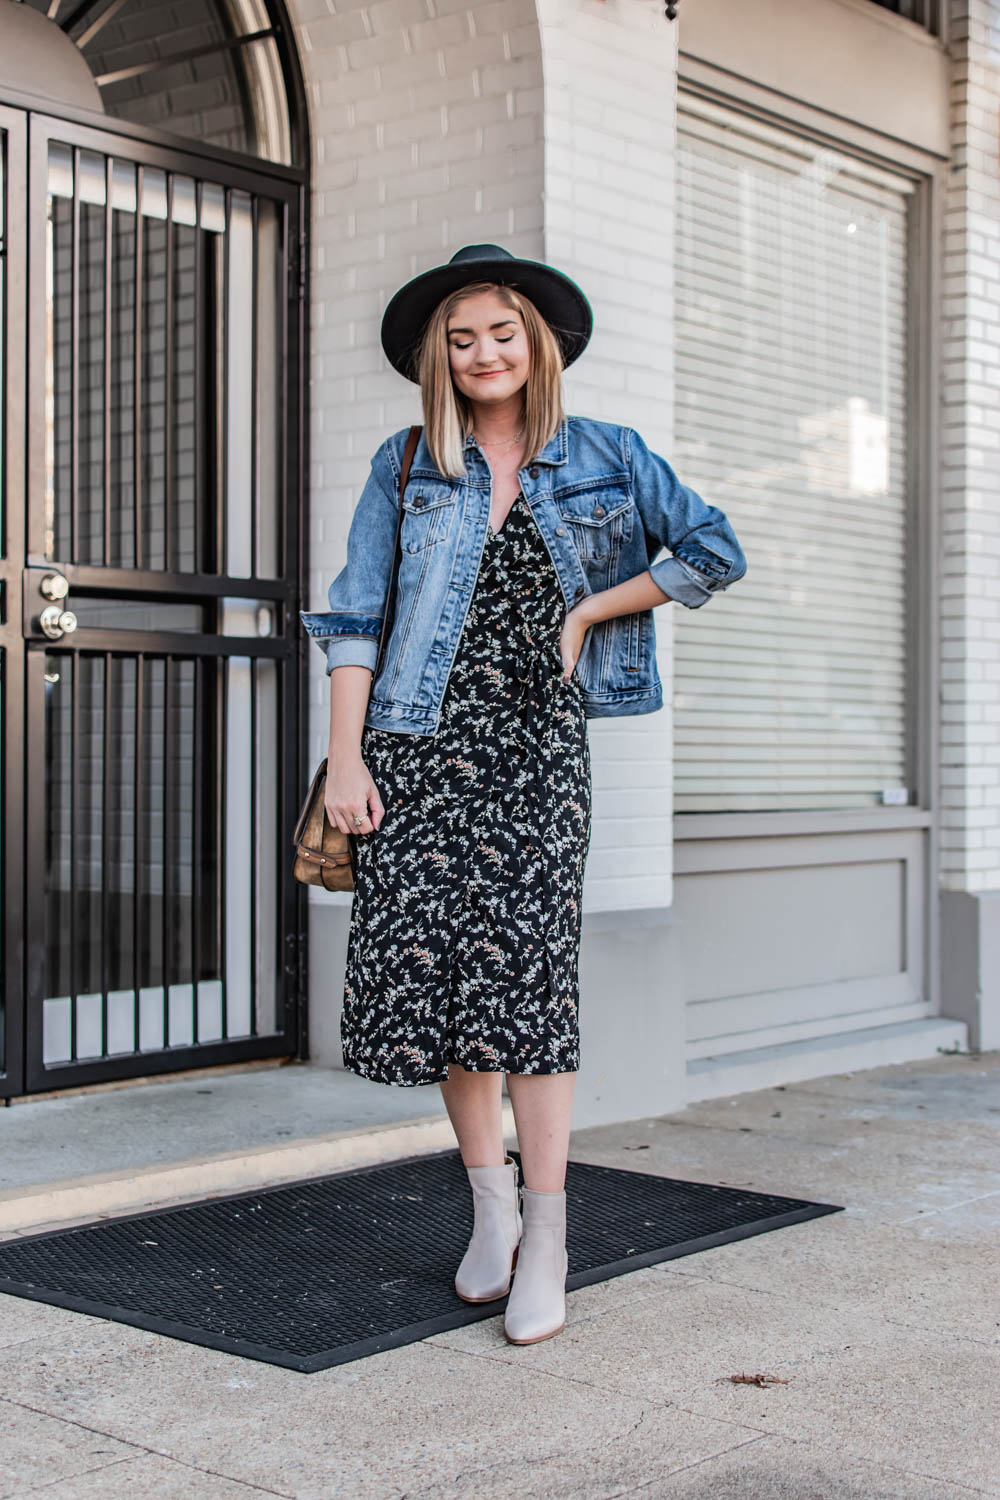 Two ways to were a wrap dress this fall. Wearing a black floral midi wrap dress from wearNYLA. Dressed down with a denim jacket and boots.